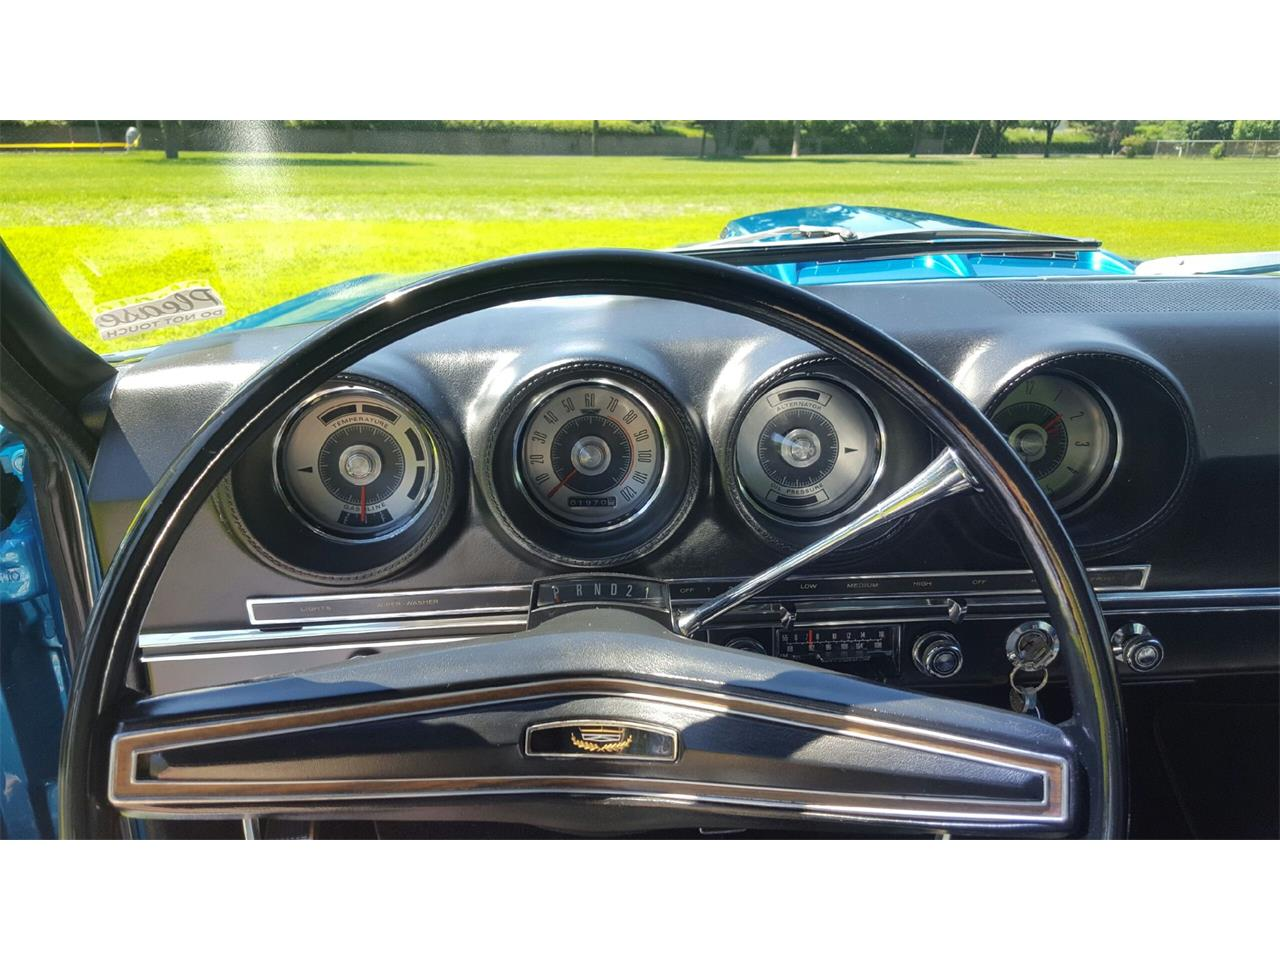 Large Picture of 1969 Ford Torino located in Minnesota Auction Vehicle - L8I4